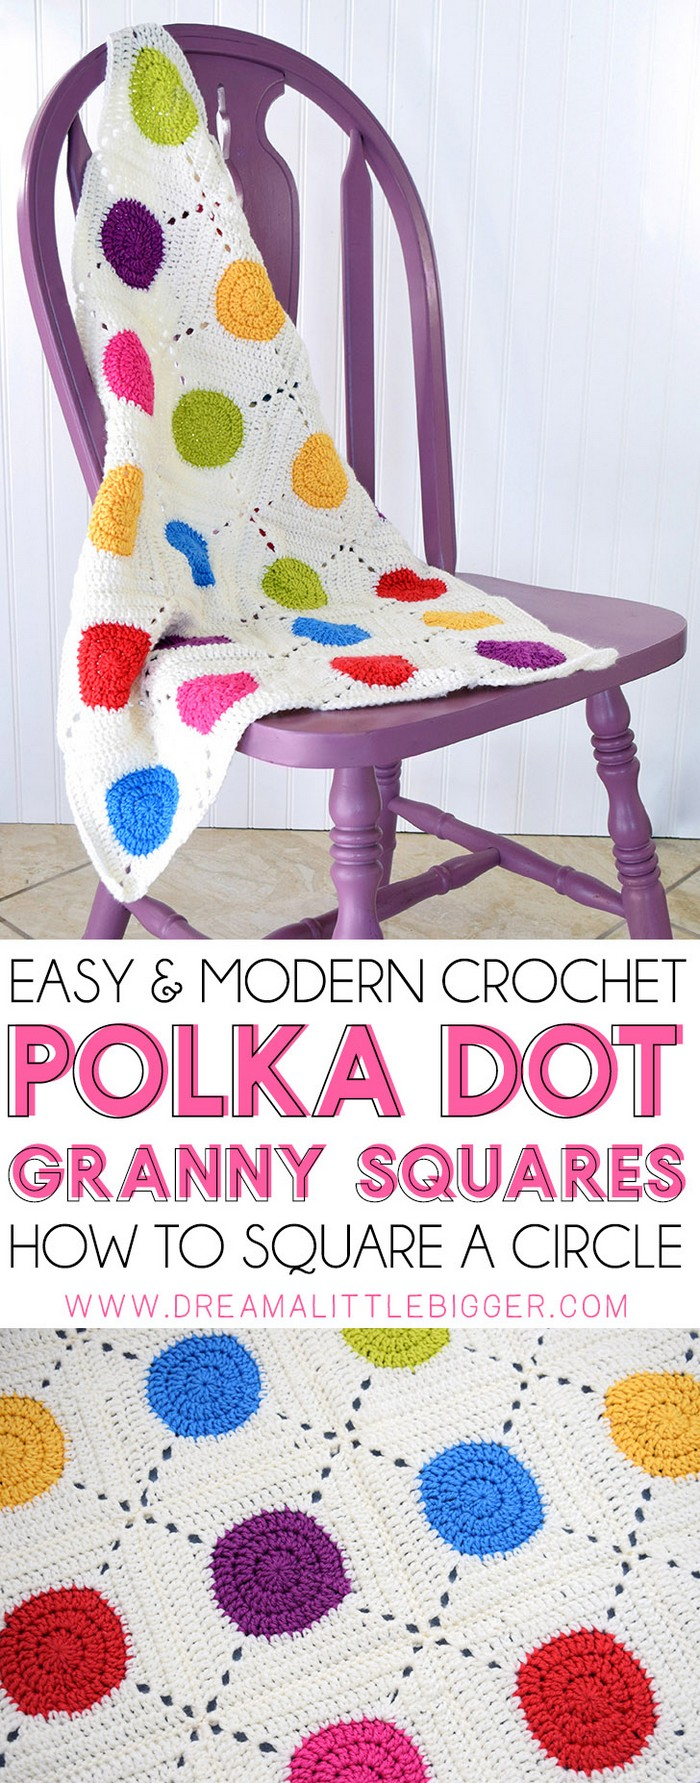 Crochet Circle Granny Squares-Whether you are looking for an afghan, a granny square, a baby blanket or any other design, here you will find all new crochet blanket patterns that you will really fall in love with them. #Blankets #crochetblanket #crochetblanketpatterns #freecrochetblanketpattern #crochetblanketafghan